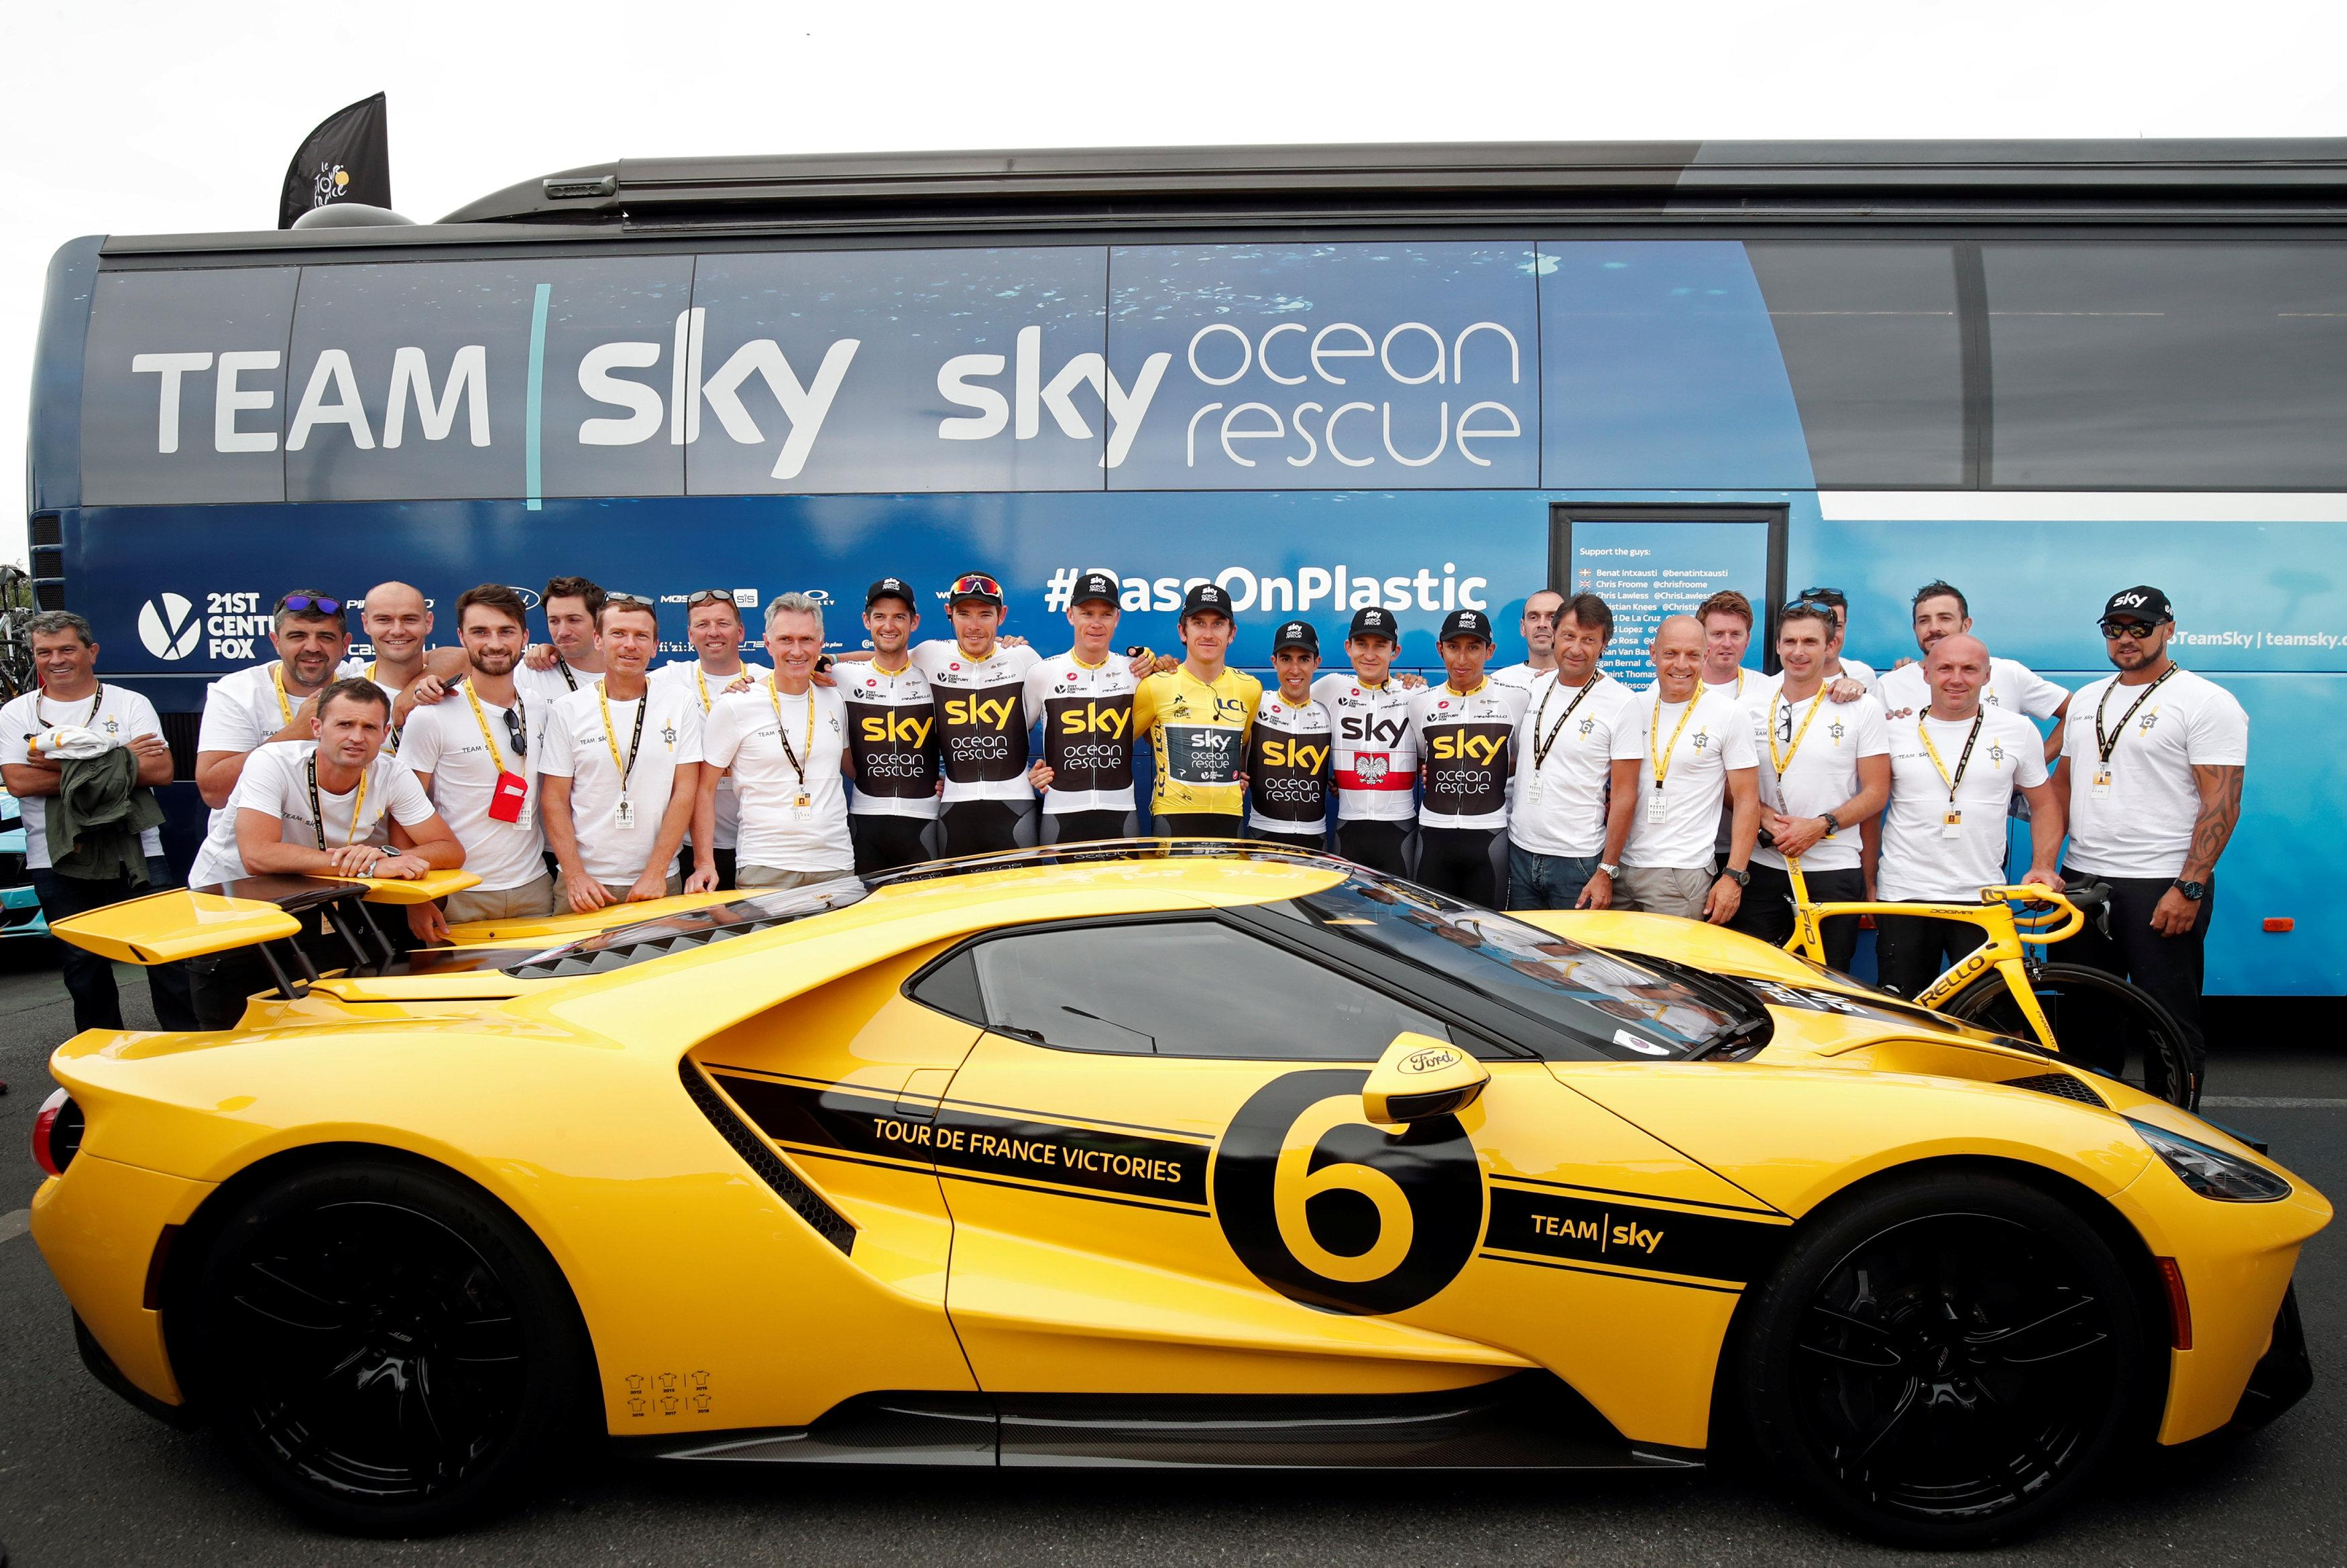 Team Sky got a custom-made Ford GT with the number 6 on the side to commemorate their dominance of the race